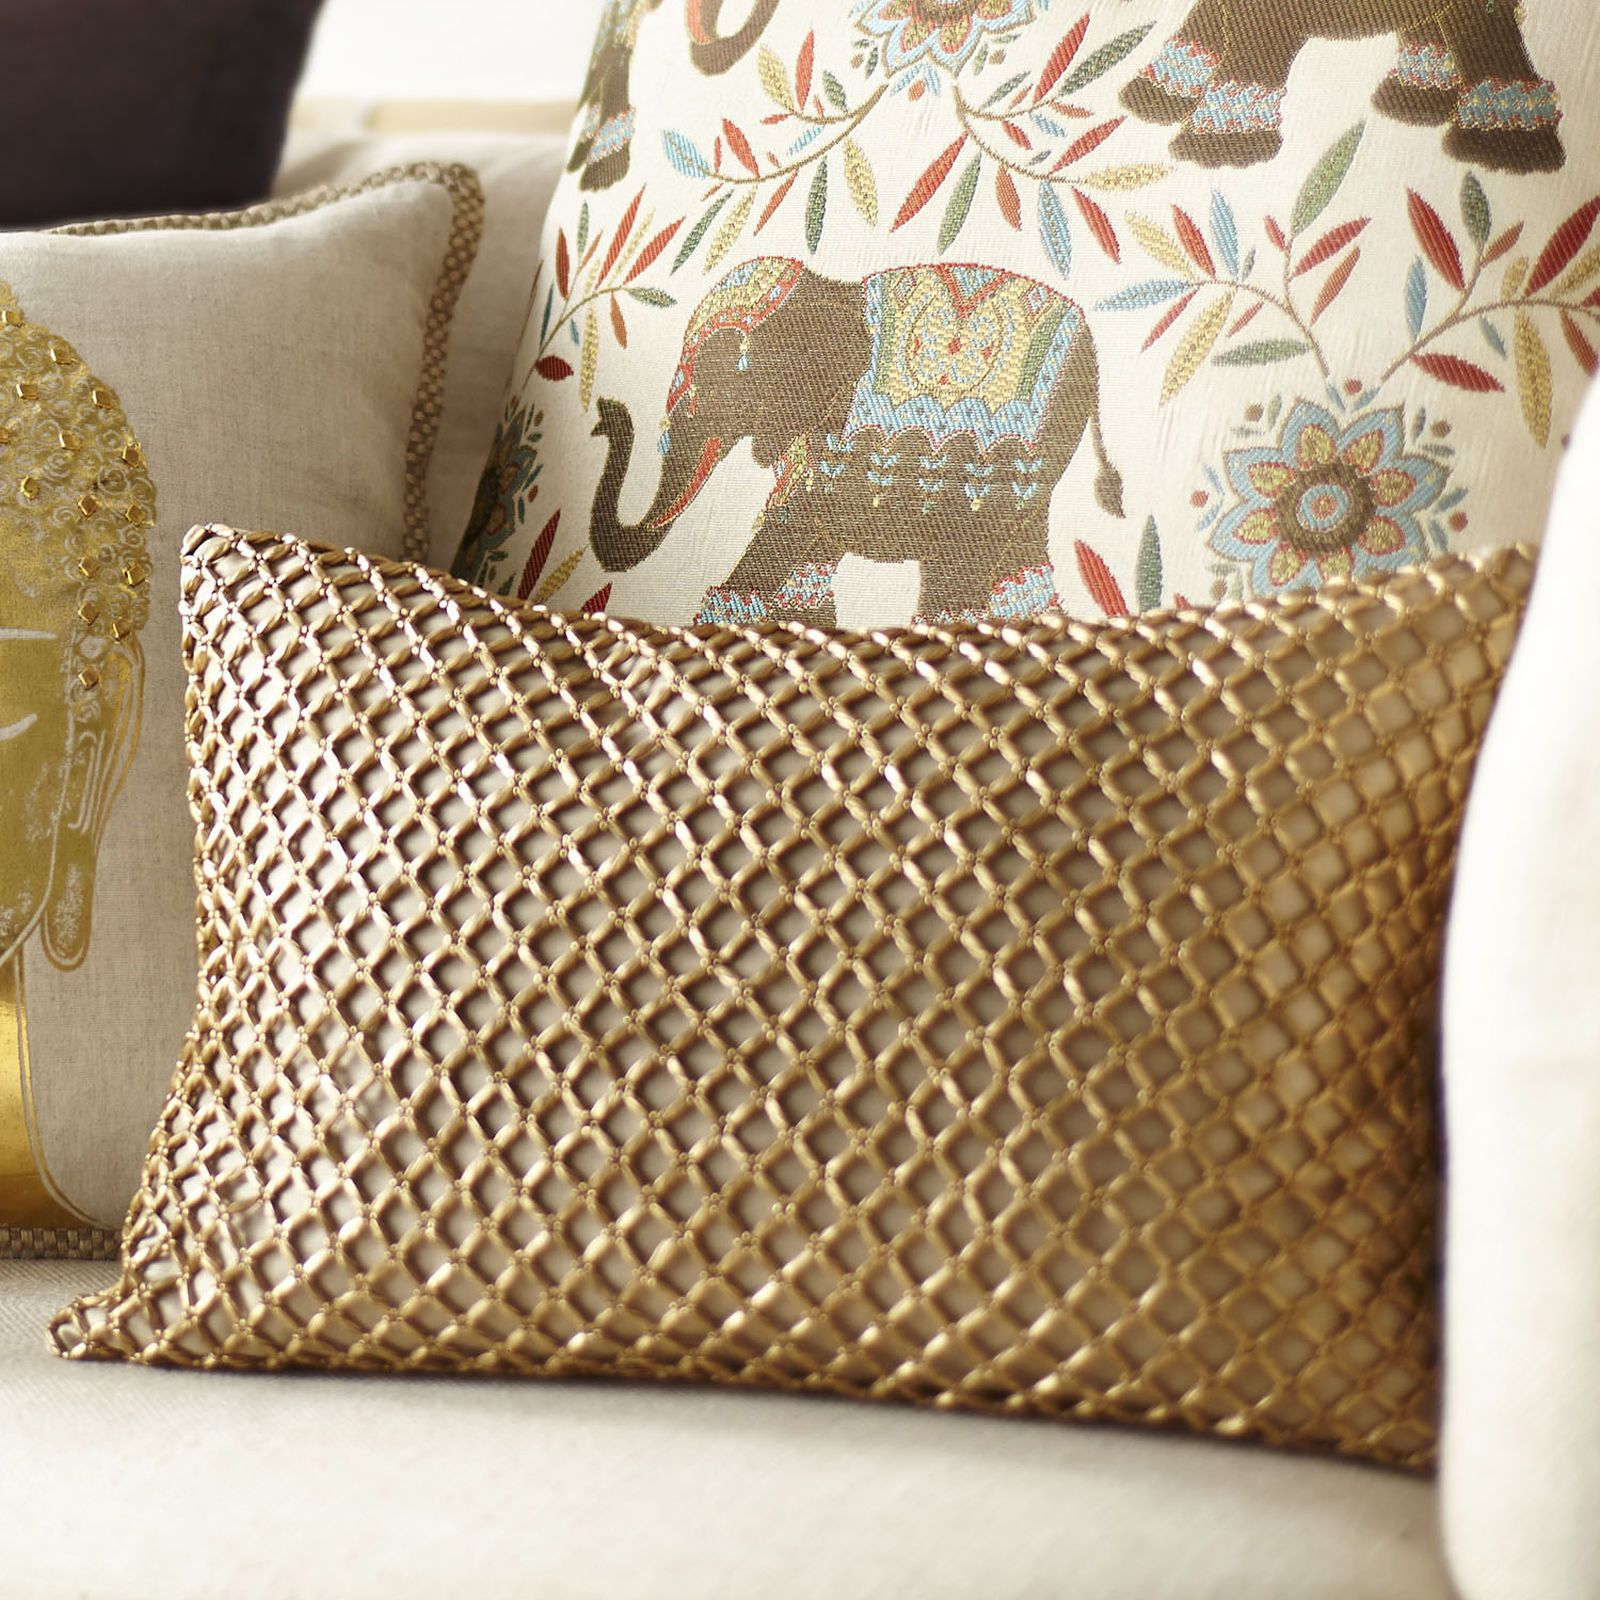 This glamorous design is the gold standard of pillows. Instantly increase the value of your home by adding this gorgeous metallic beaded number. You'll definitely appreciate the interest it generates.